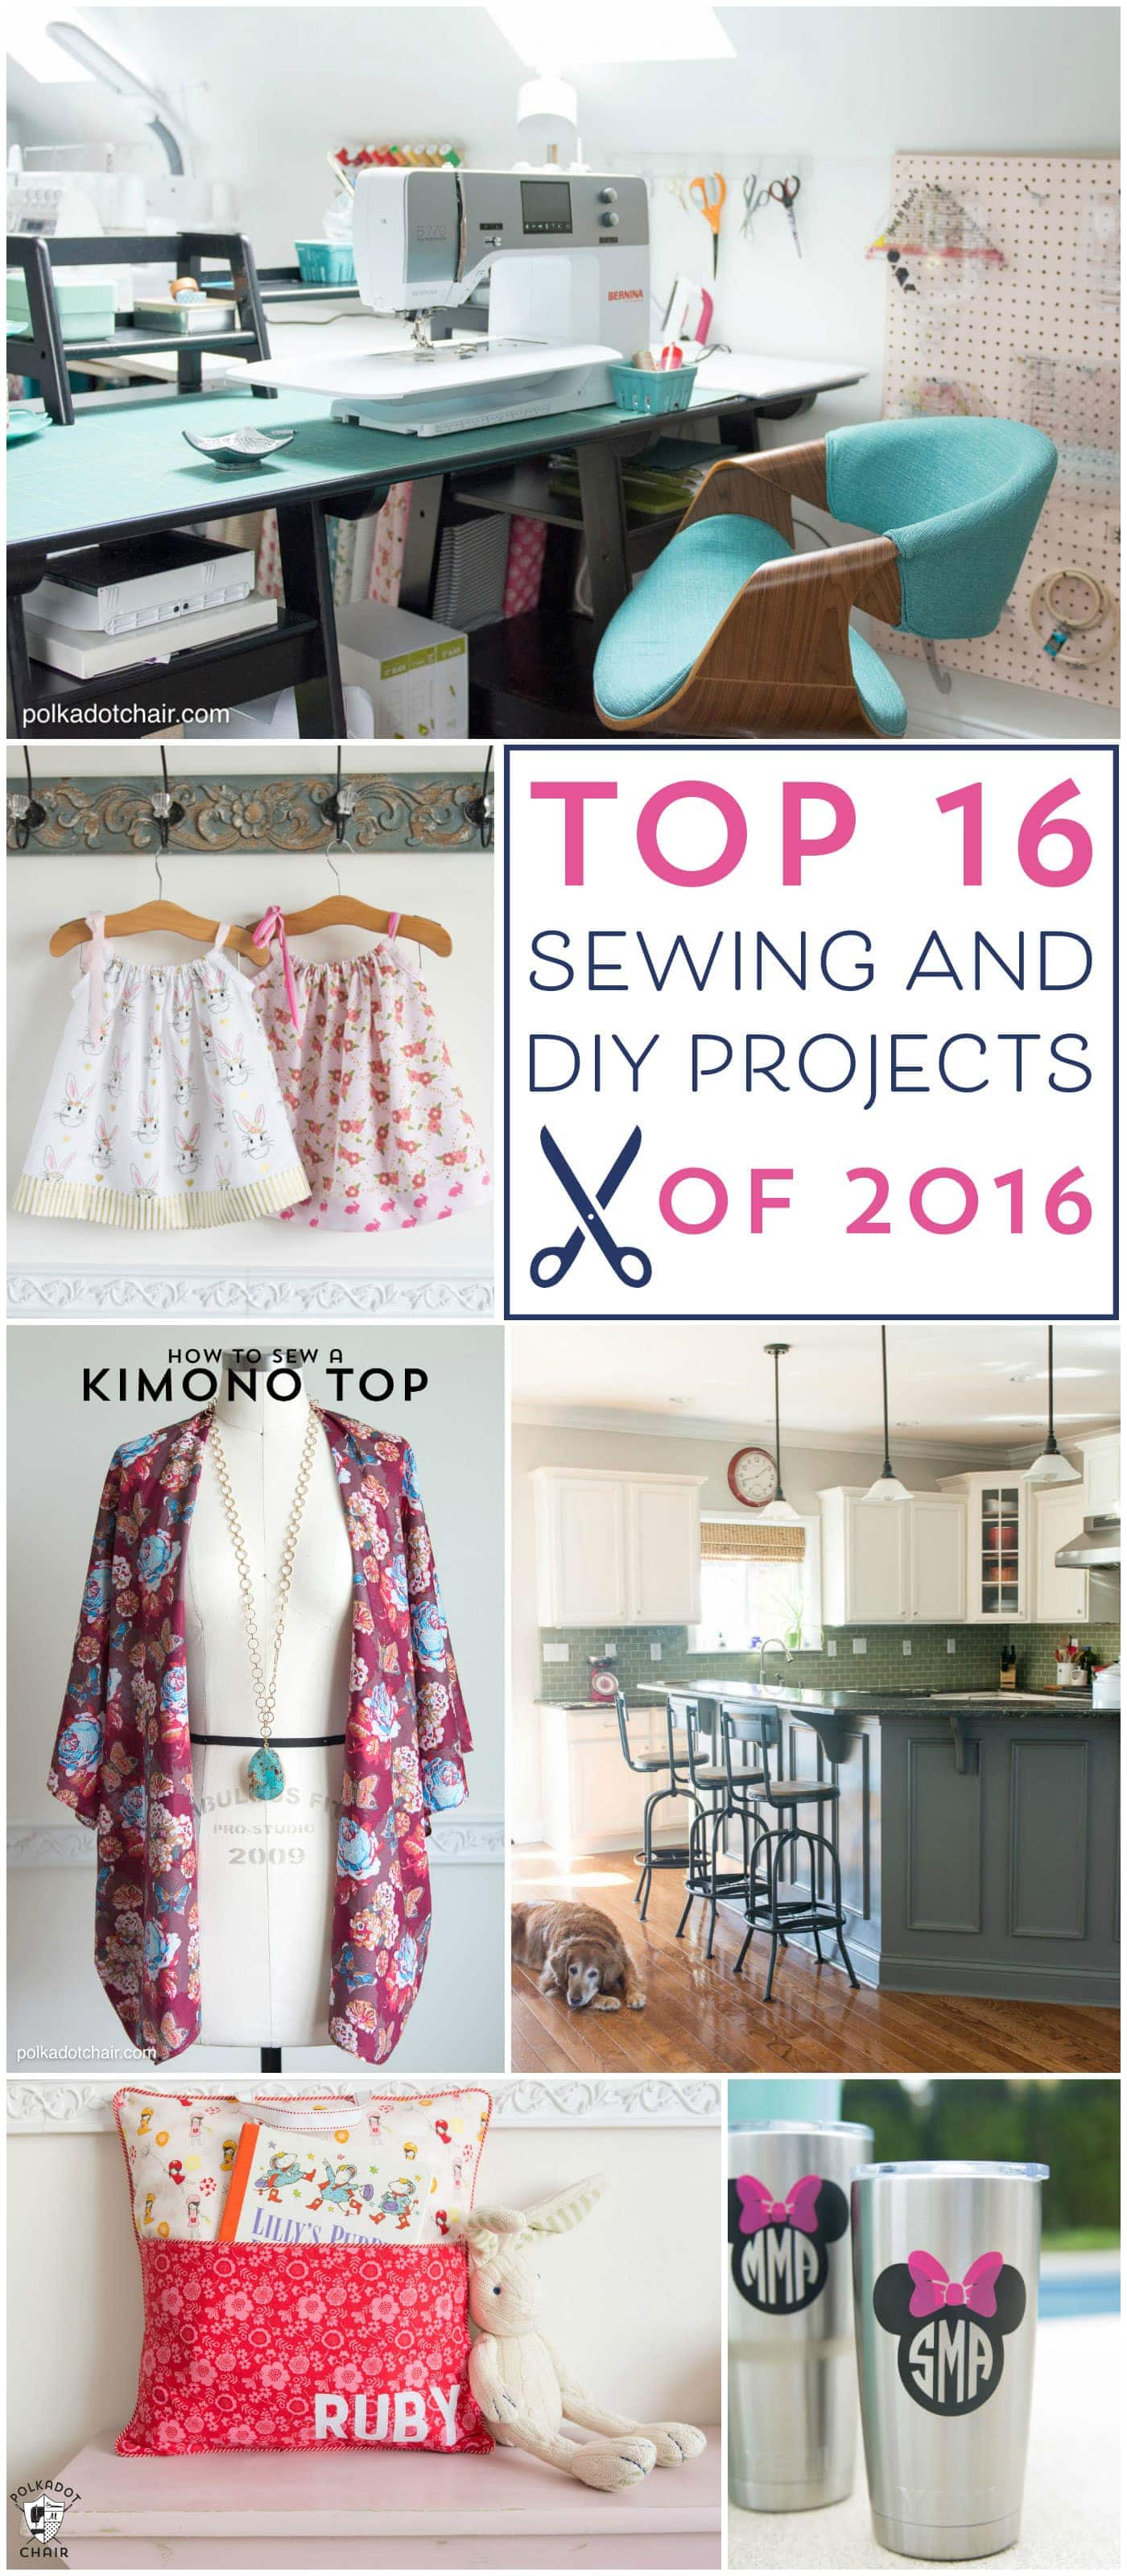 Top 16 Projects of 2016